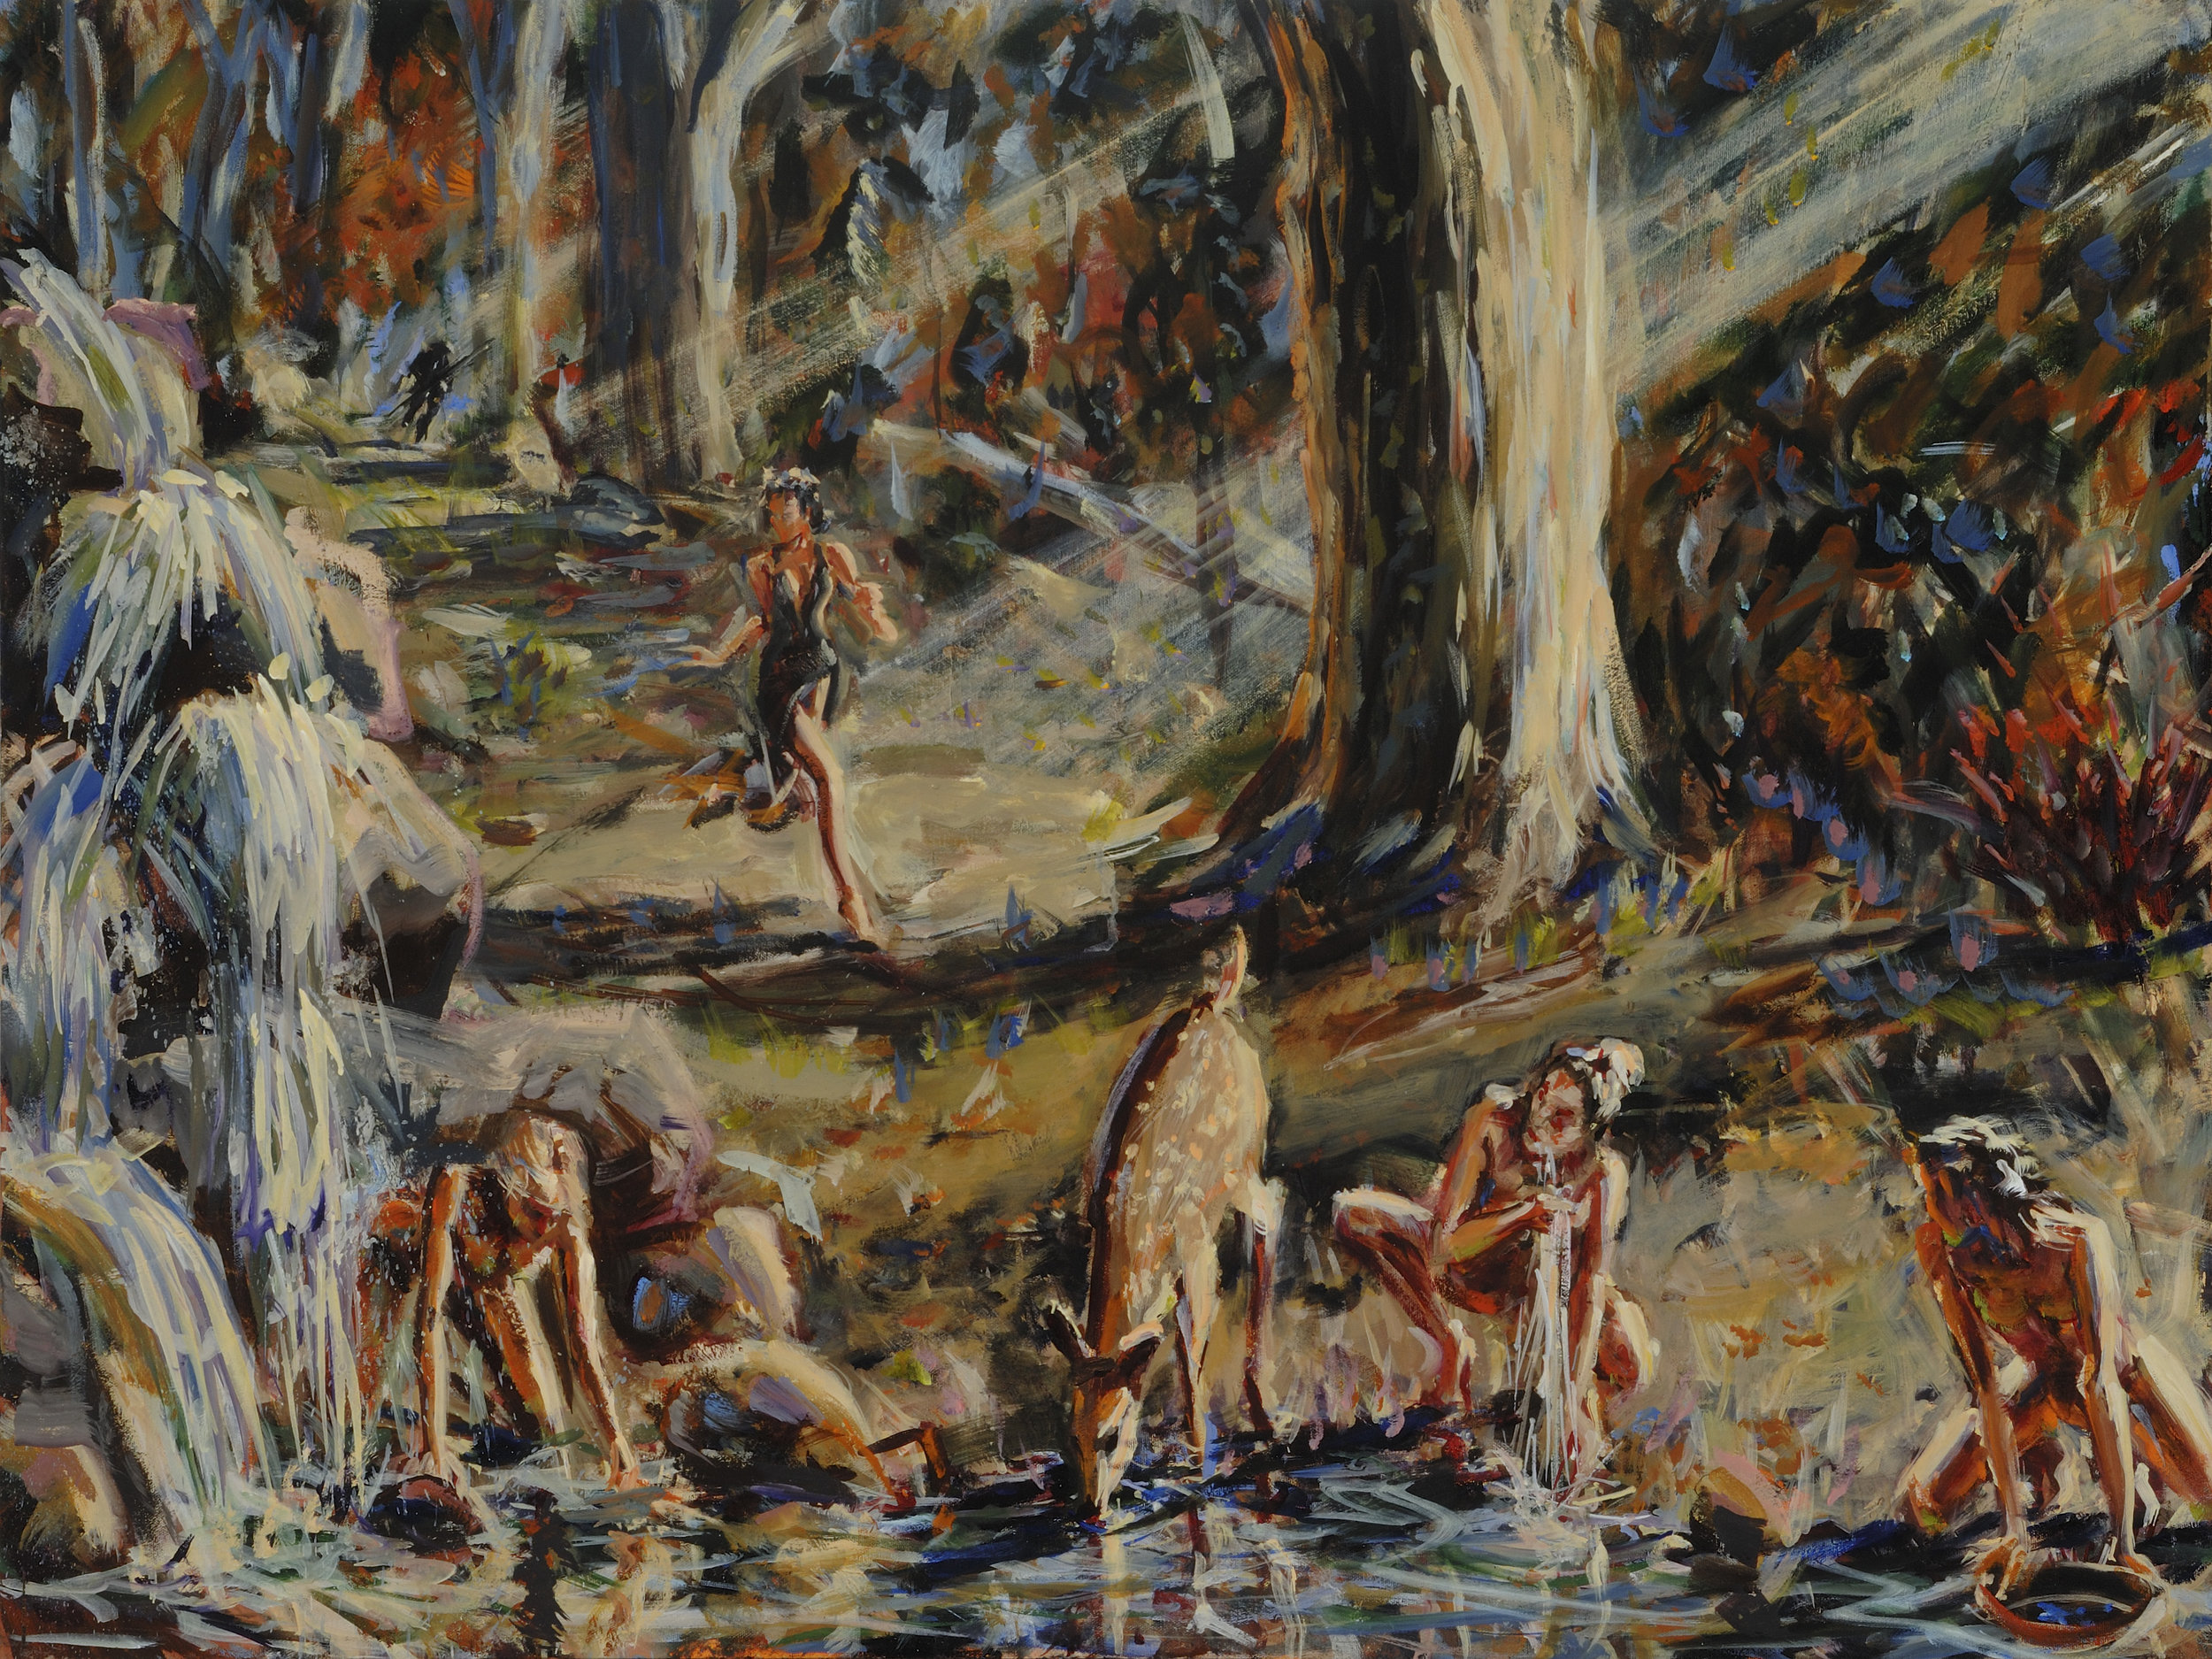 Deep Woods  30 x 40 inches, oil on canvas